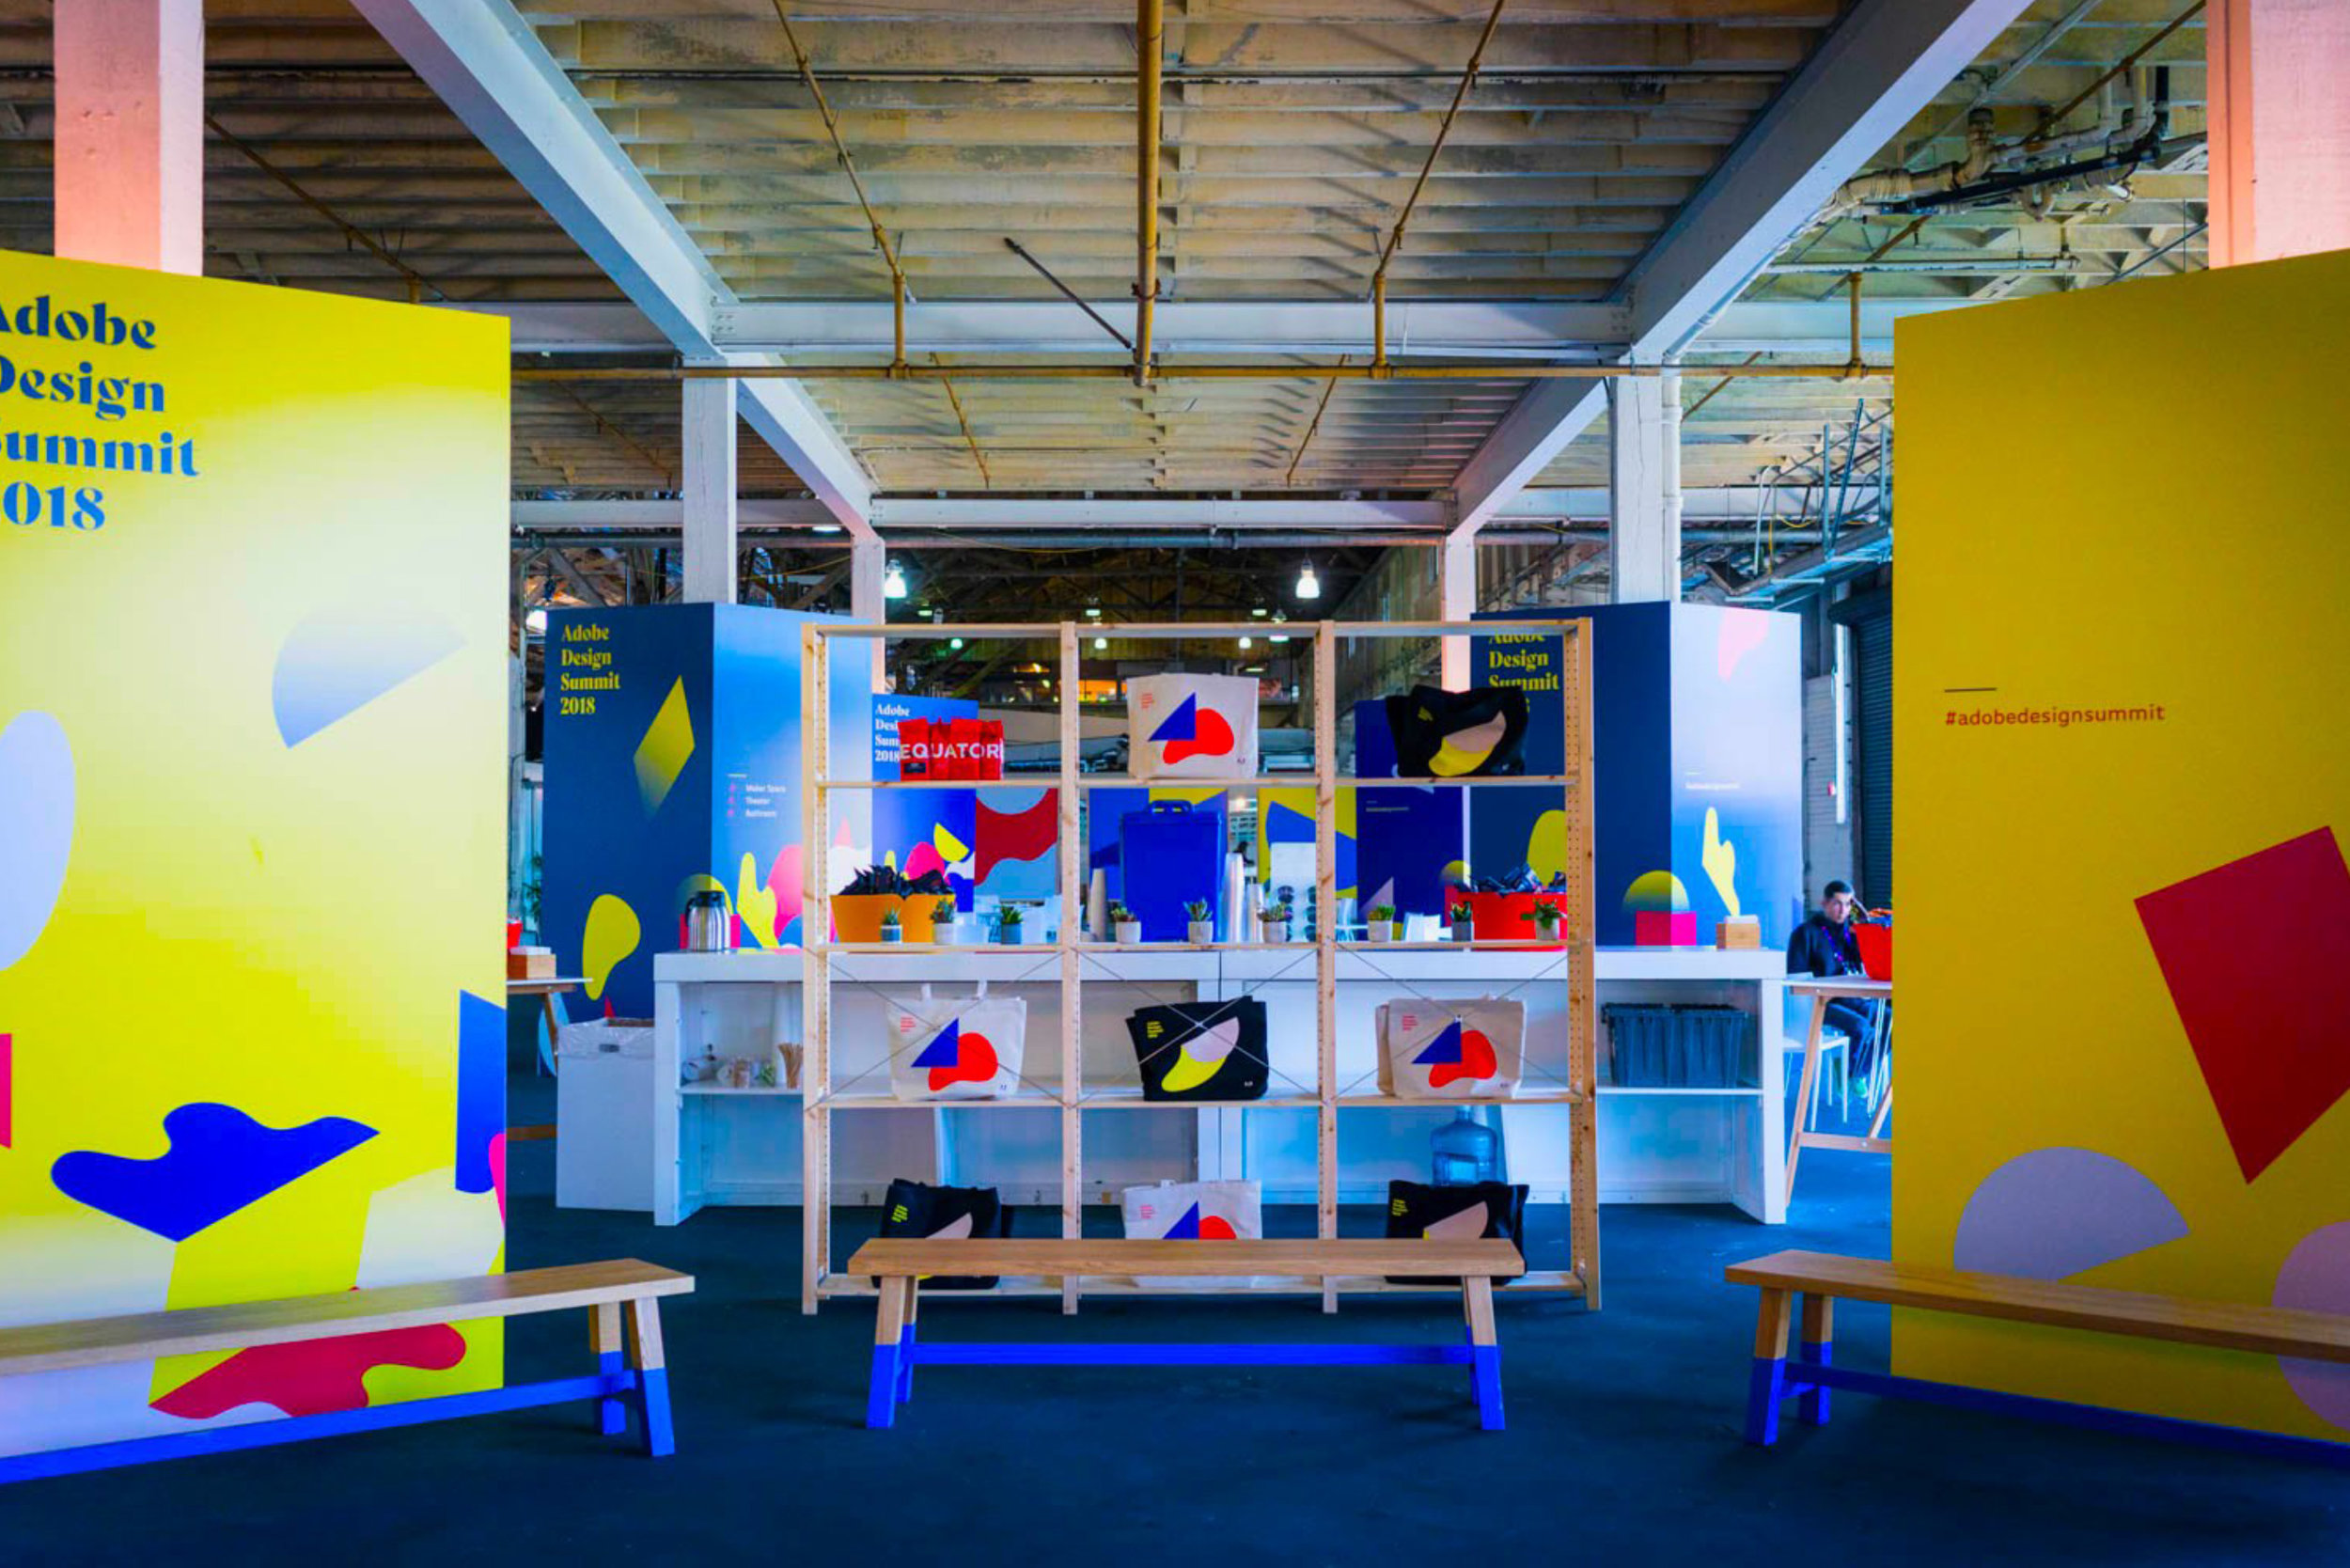 Preview Events - Adobe Design Summit - San Francisco - Brand design - conference design - pier 35.jpg